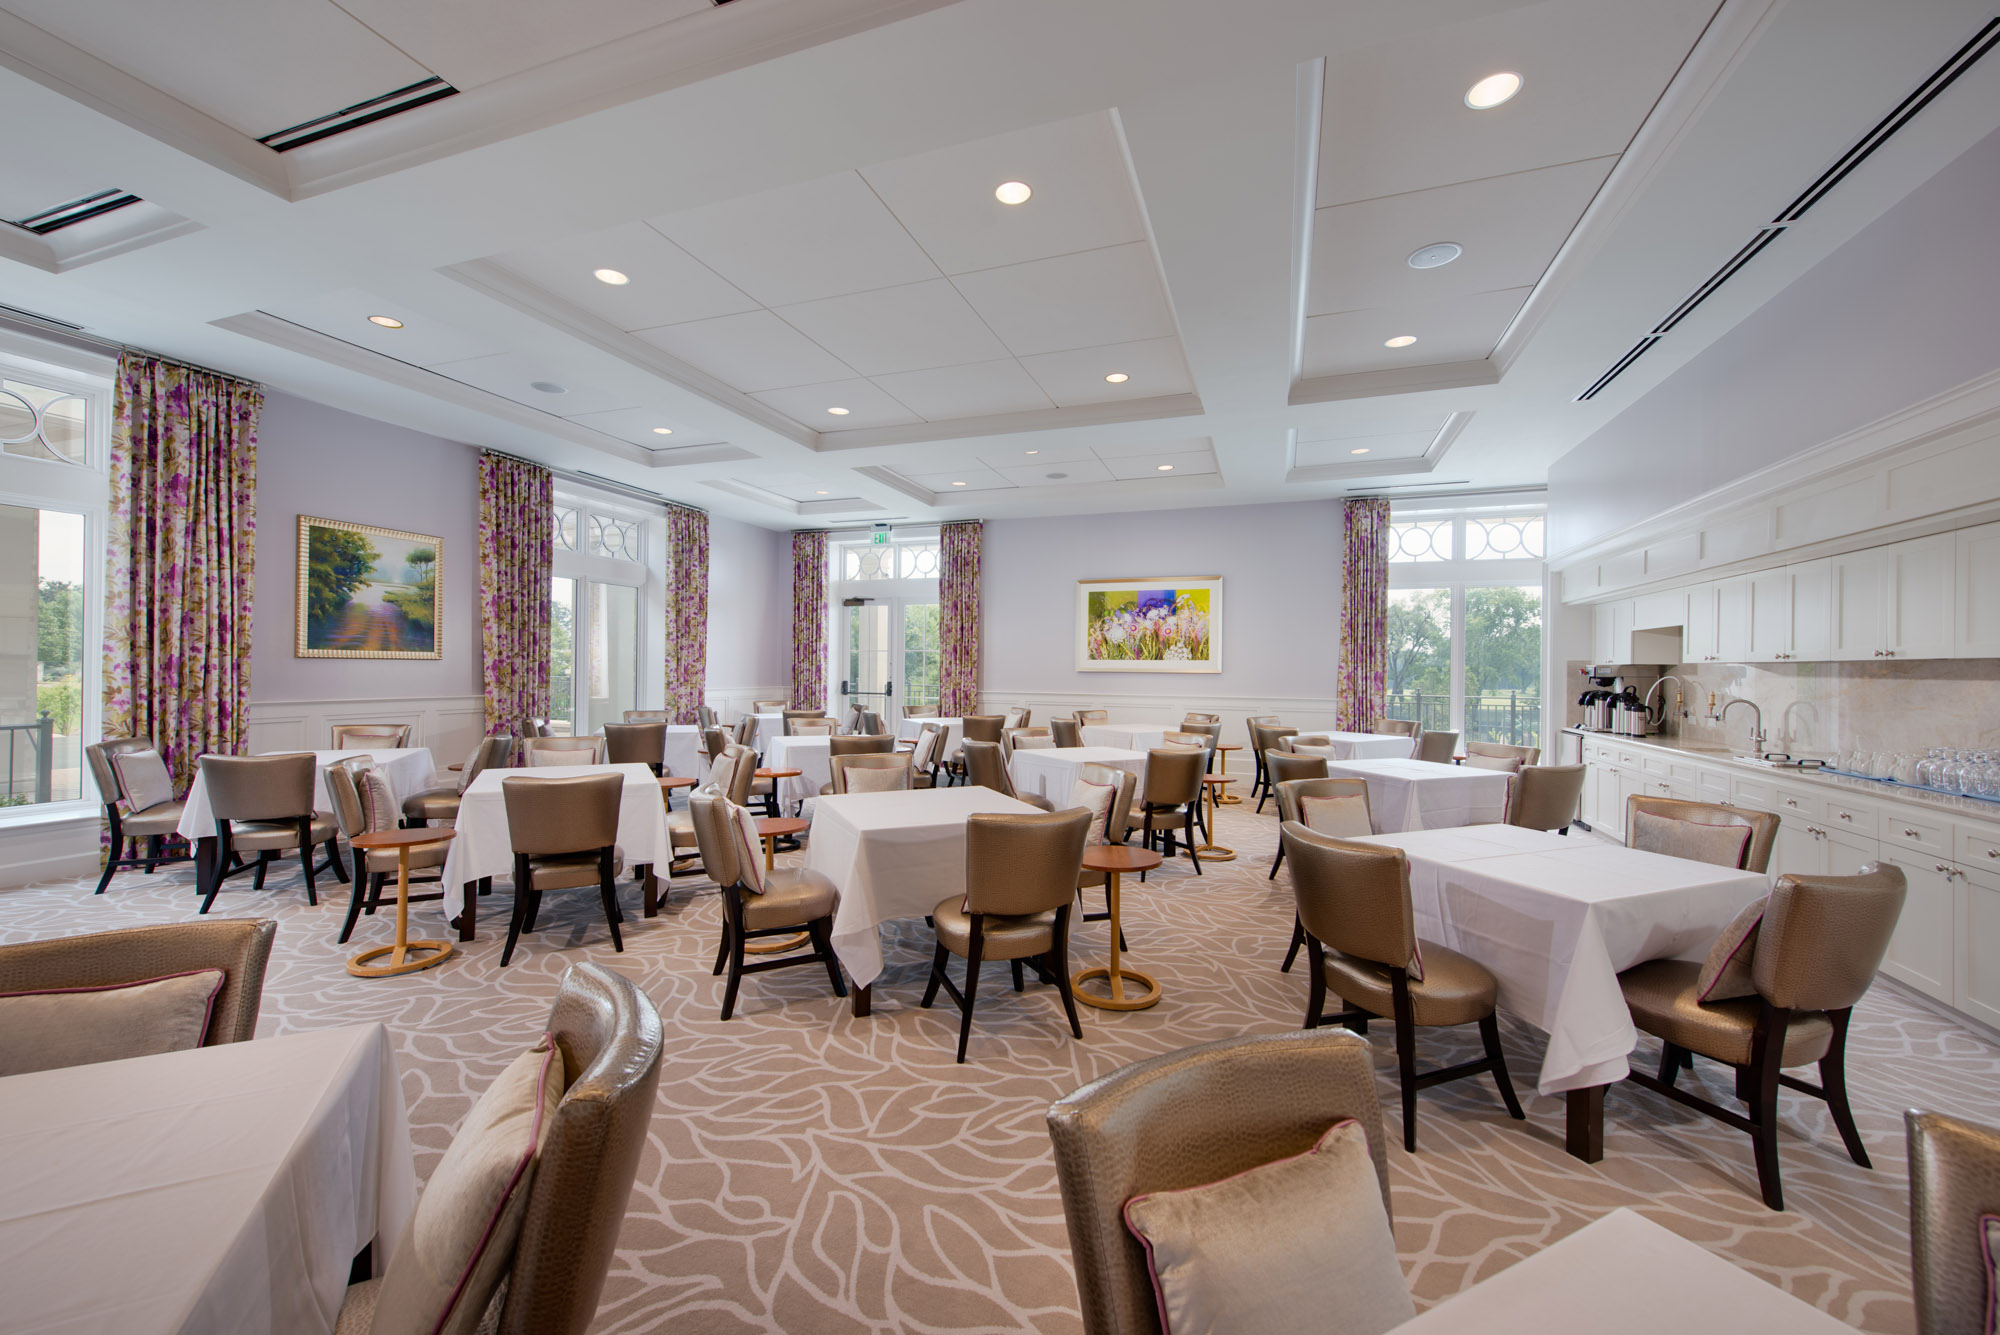 Woodmont Country Club Interior Image202753.jpg